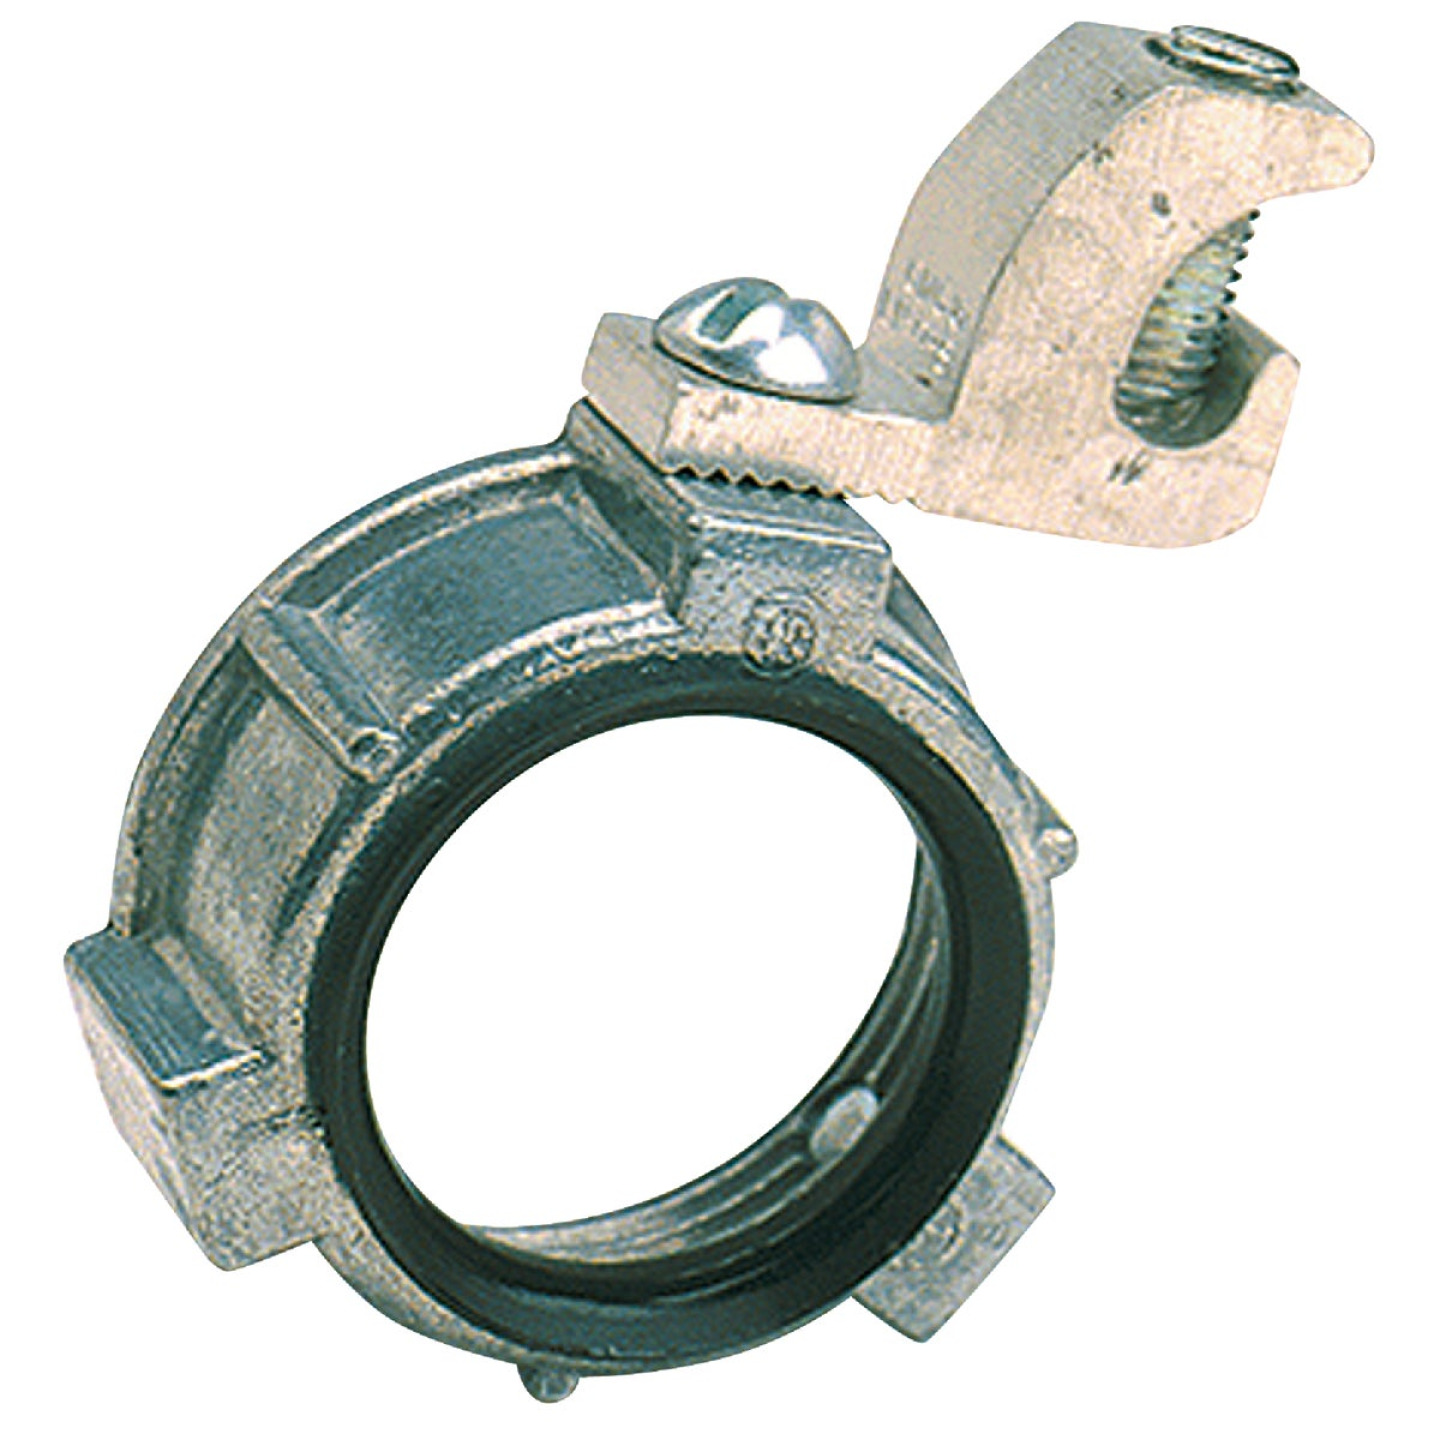 Halex 2 In. Rigid & IMC Insulated Metallic Grounding Conduit Bushing Image 1